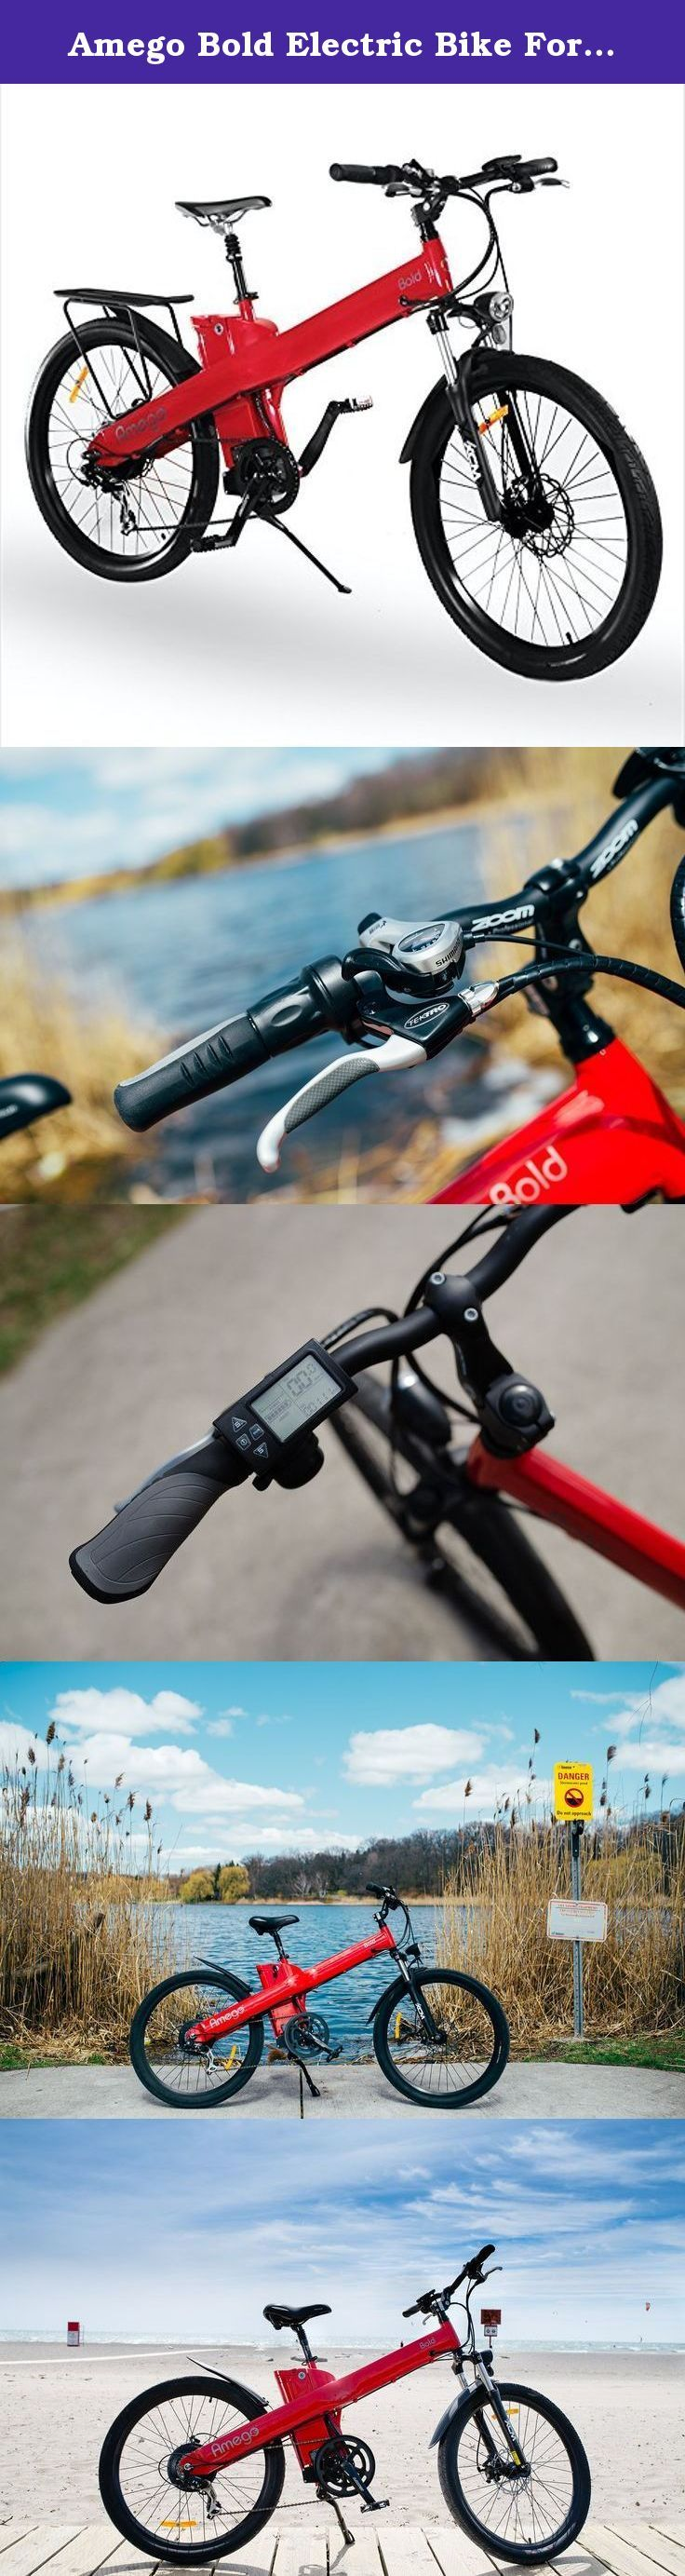 Amego Bold Electric Bike For Adults | Great For Men & Women | 500W of Power | Up To 25MPH Top Speed and 70 Mile Range | 1 Year Warranty (Ferrari Red). What we love about this electric bike is it has a 52 tooth crank wheel that allows you to use your full muscular power above the Bolds motor power. This can give you speeds up to 45 km/h depending on your efforts. The Bold electric bicycles allows you to pedal as hard as you like, travel far distances with a range up to 110kms, and have the...